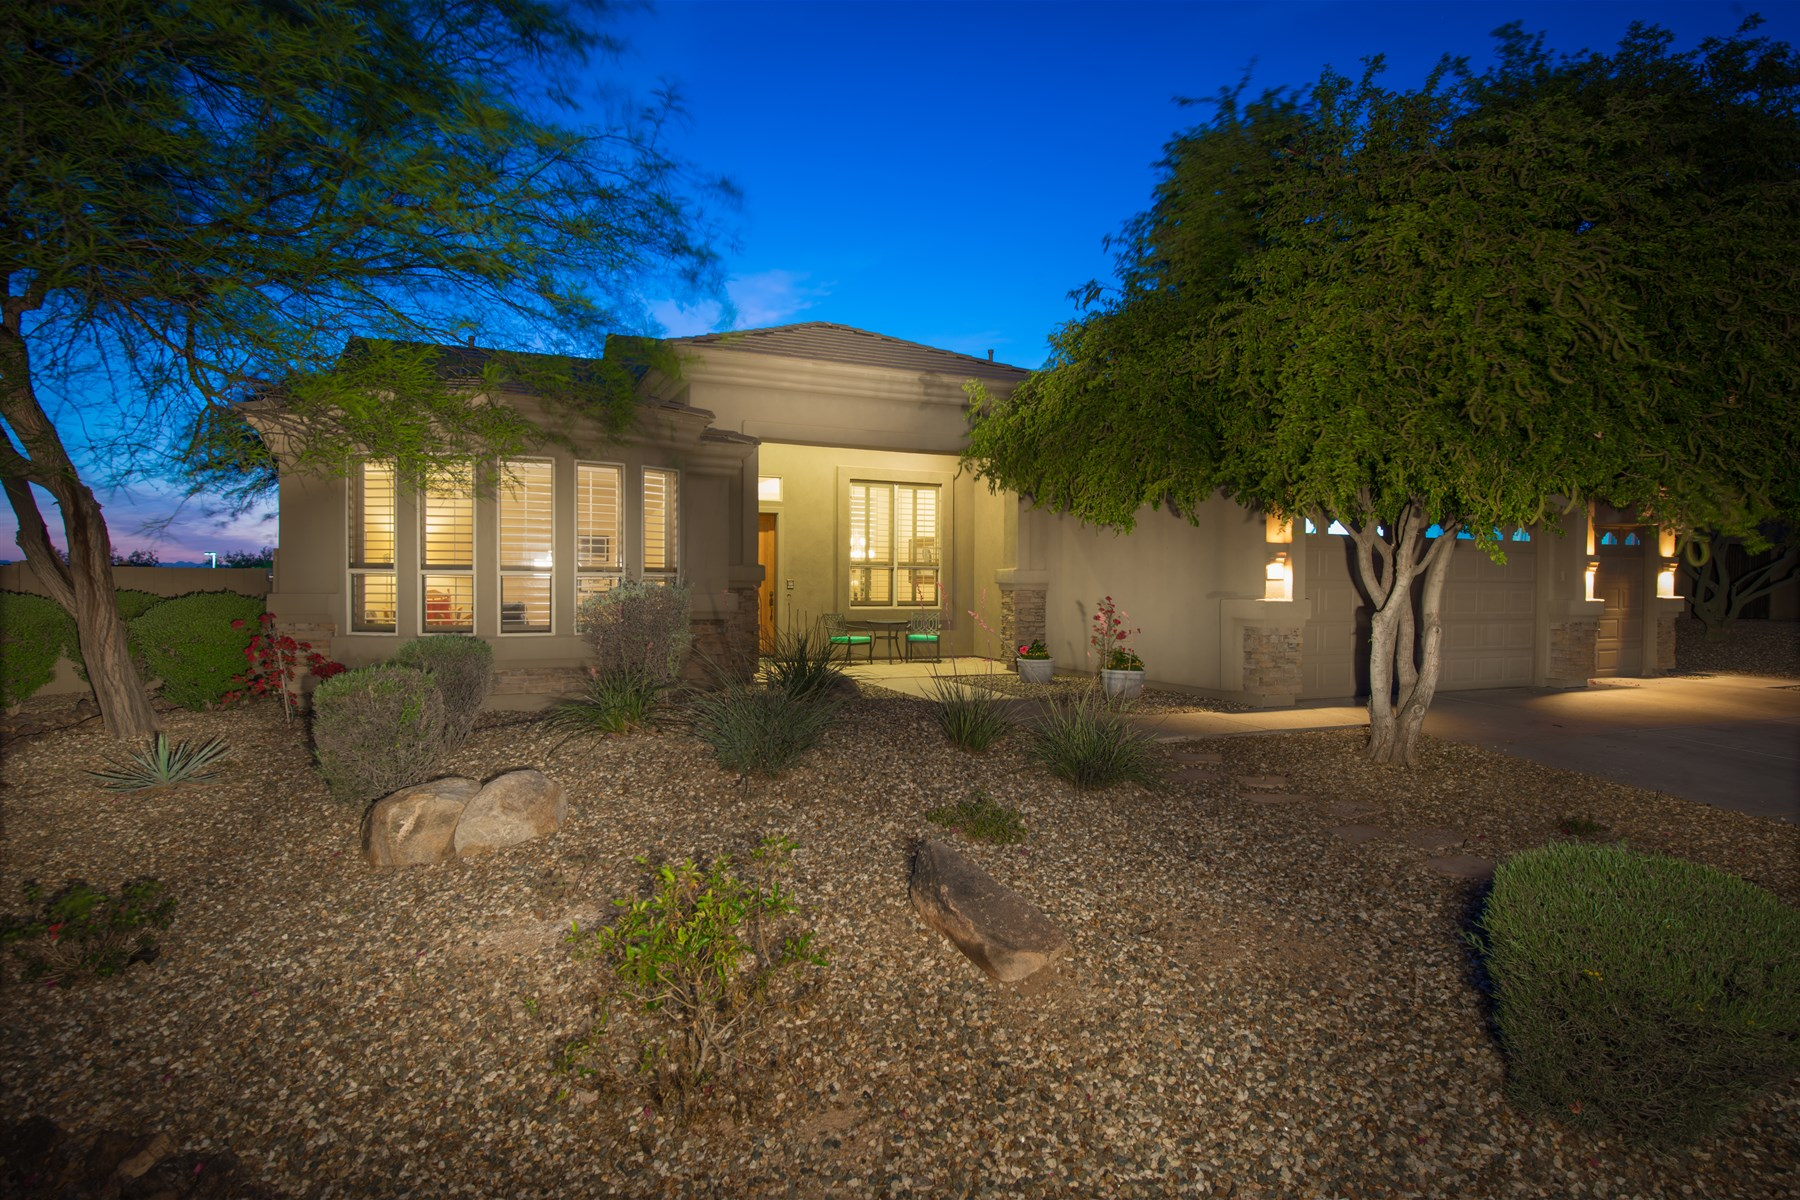 Single Family Home for Sale at Highly desirable home in the gated sierra foothills in scottsdale 10894 N 125th Pl Scottsdale, Arizona, 85259 United States